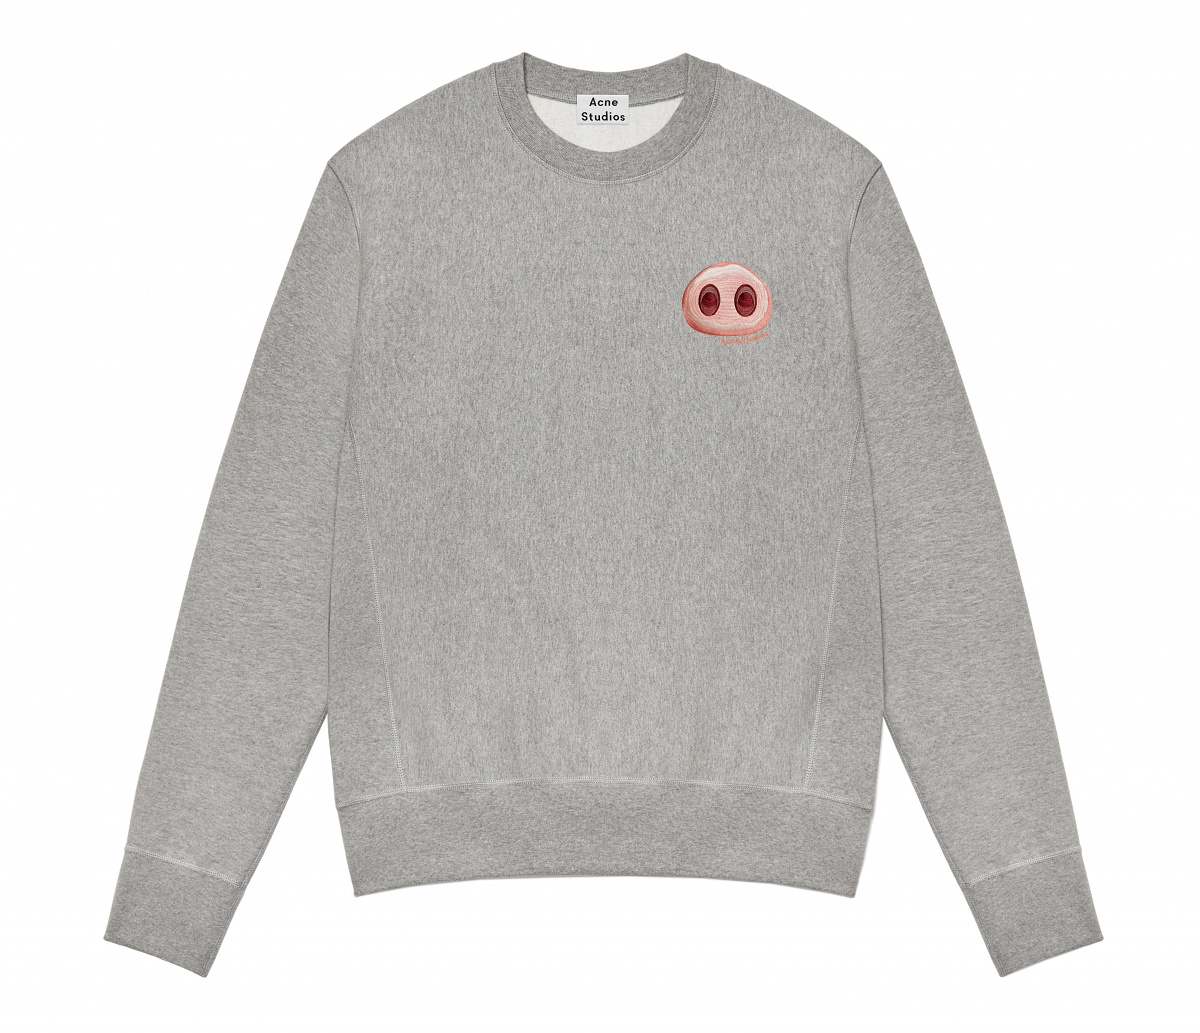 Acne Studios emojis-yesonfashion-15